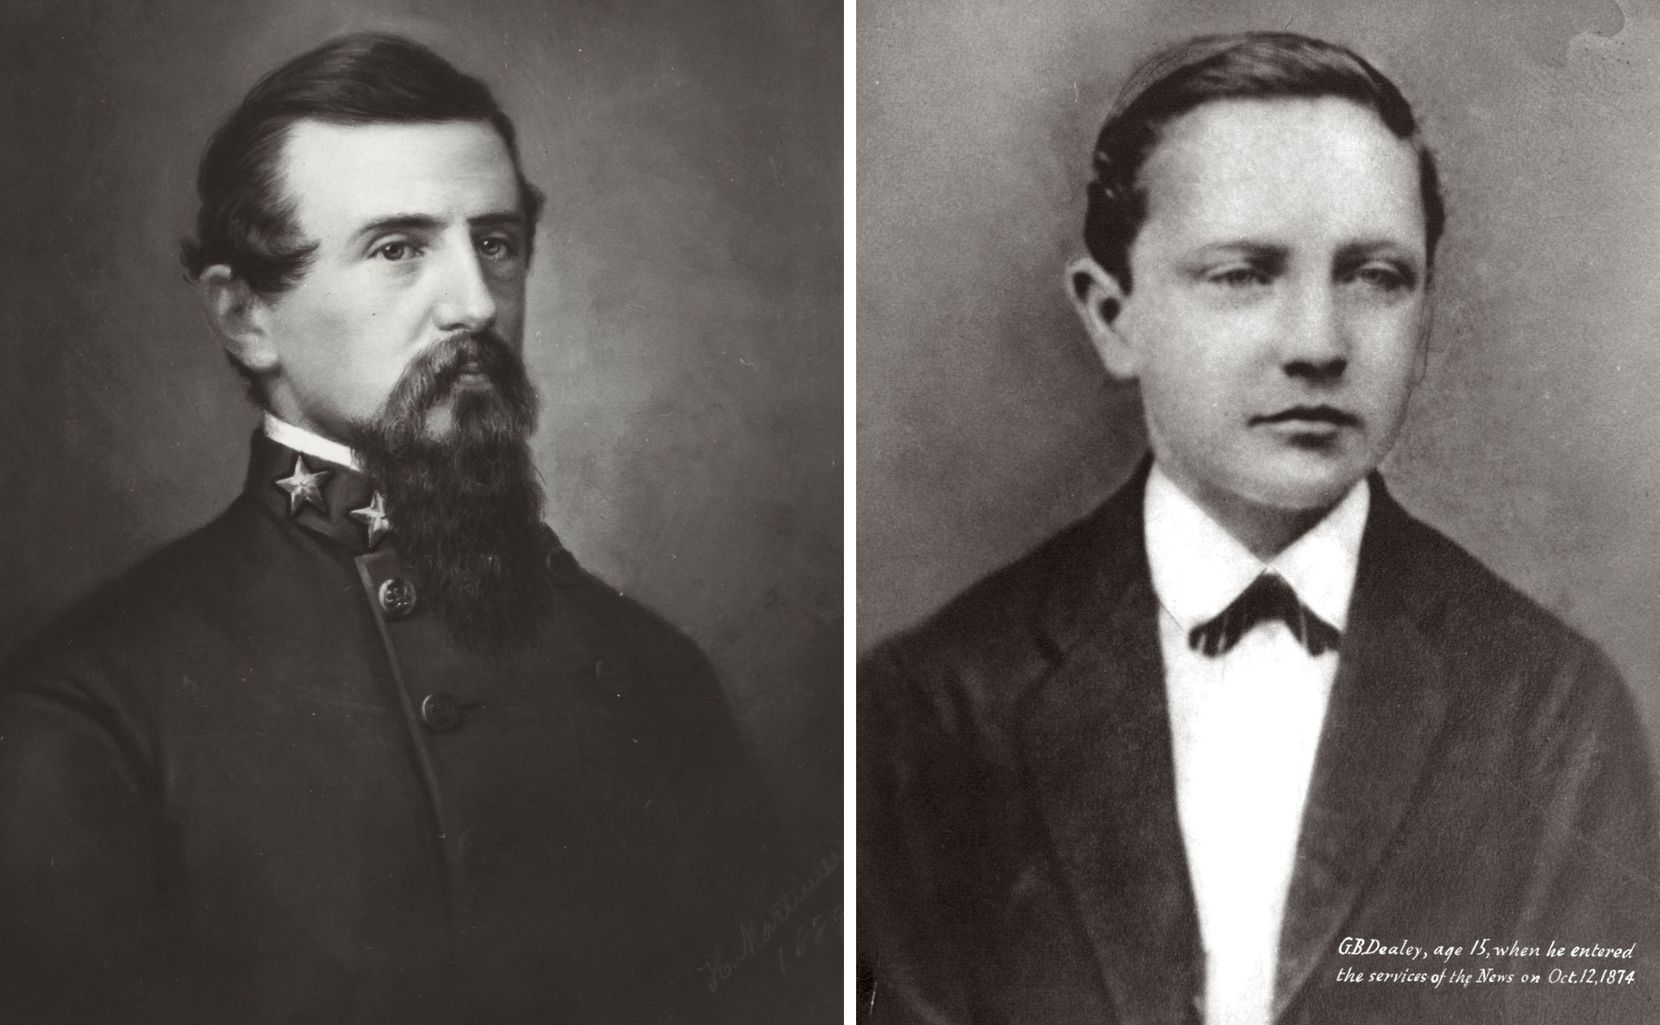 G.B. Dealey (right) was only 15 when Col. Alfred H. Belo (left) hired him at The News in Galveston.